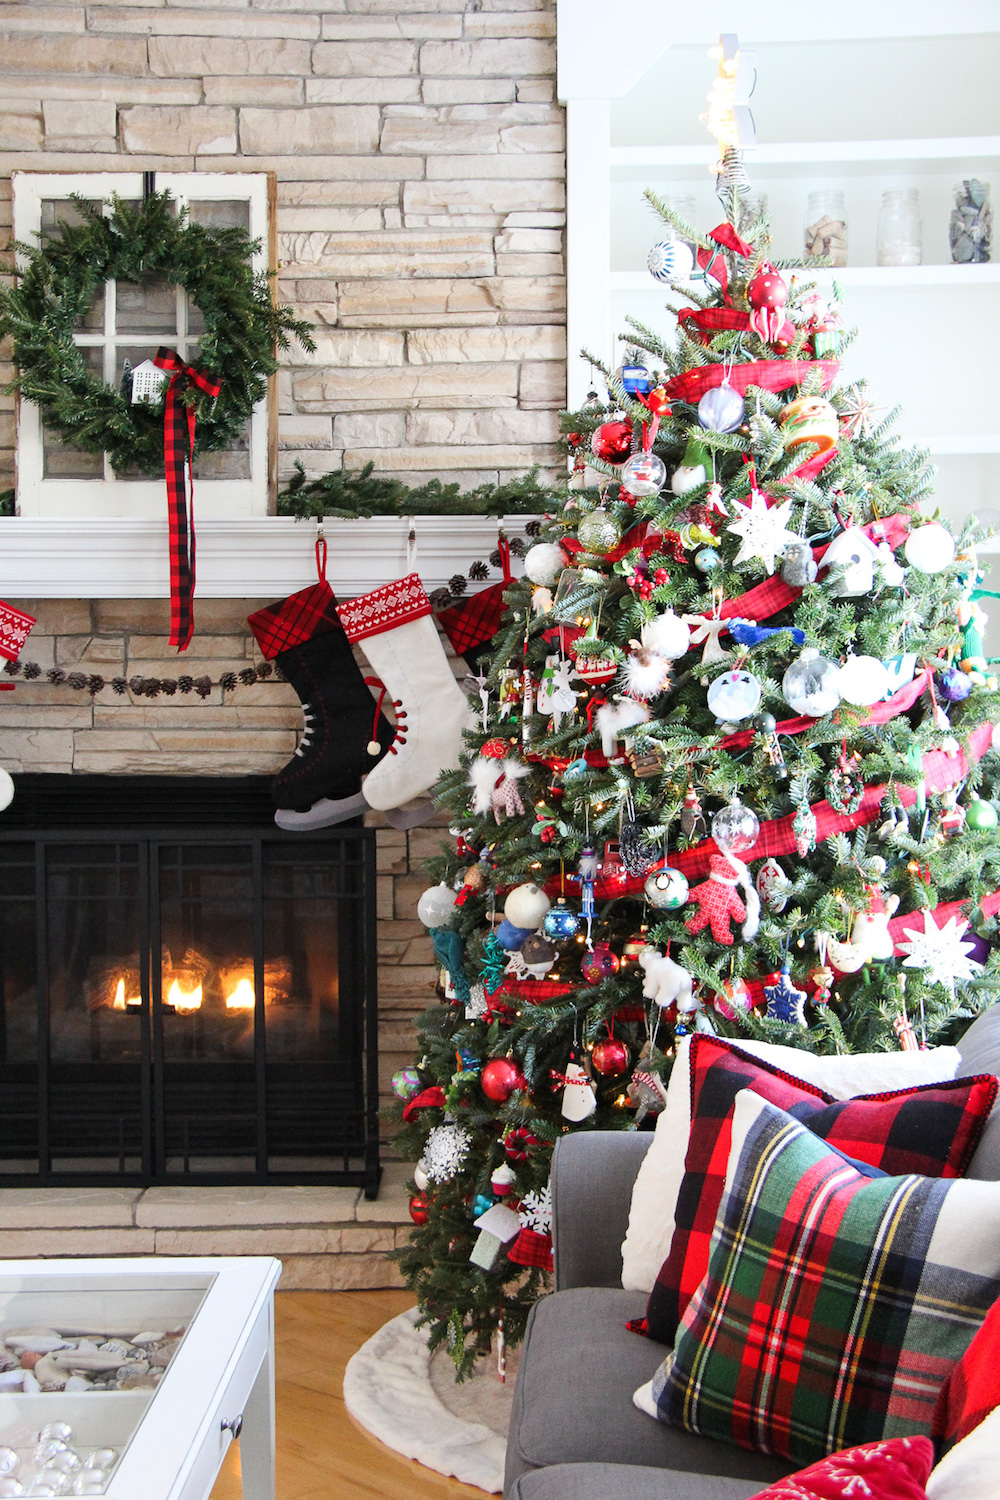 10 Incredible Christmas Home Tours To Inspire You!